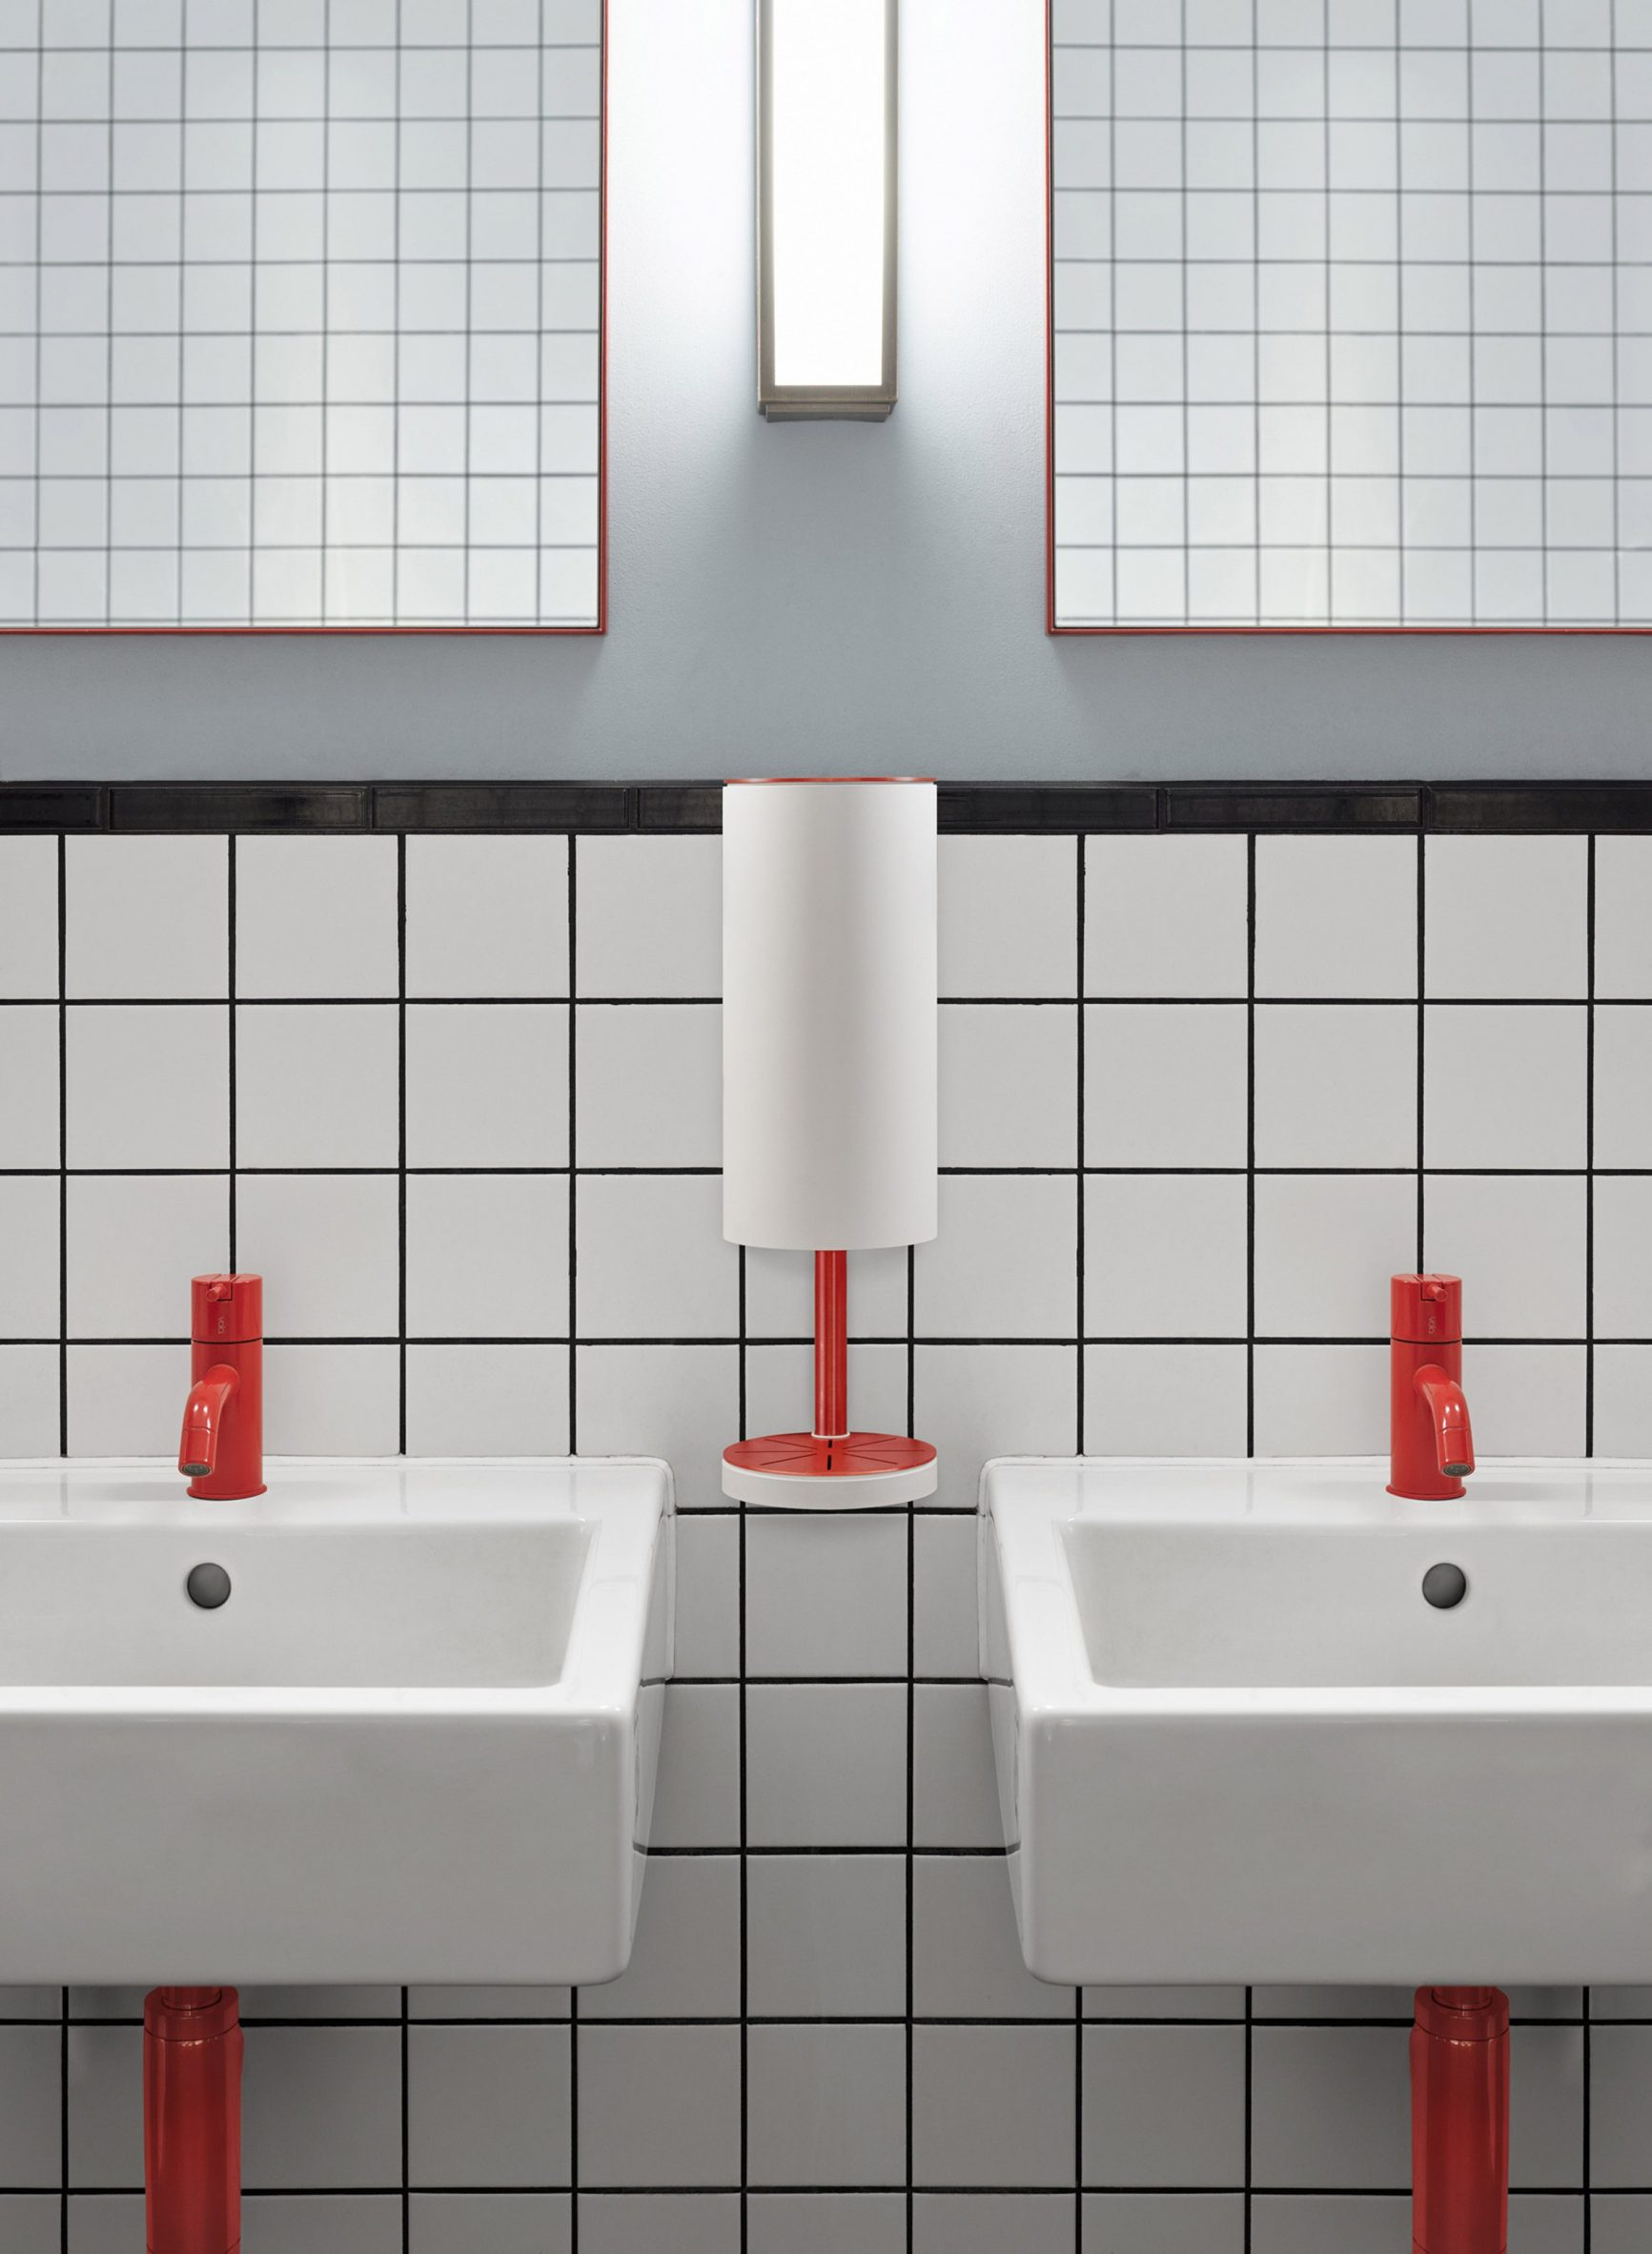 Red and white wall-mounted RS11 dispenser between basins in a public restroom